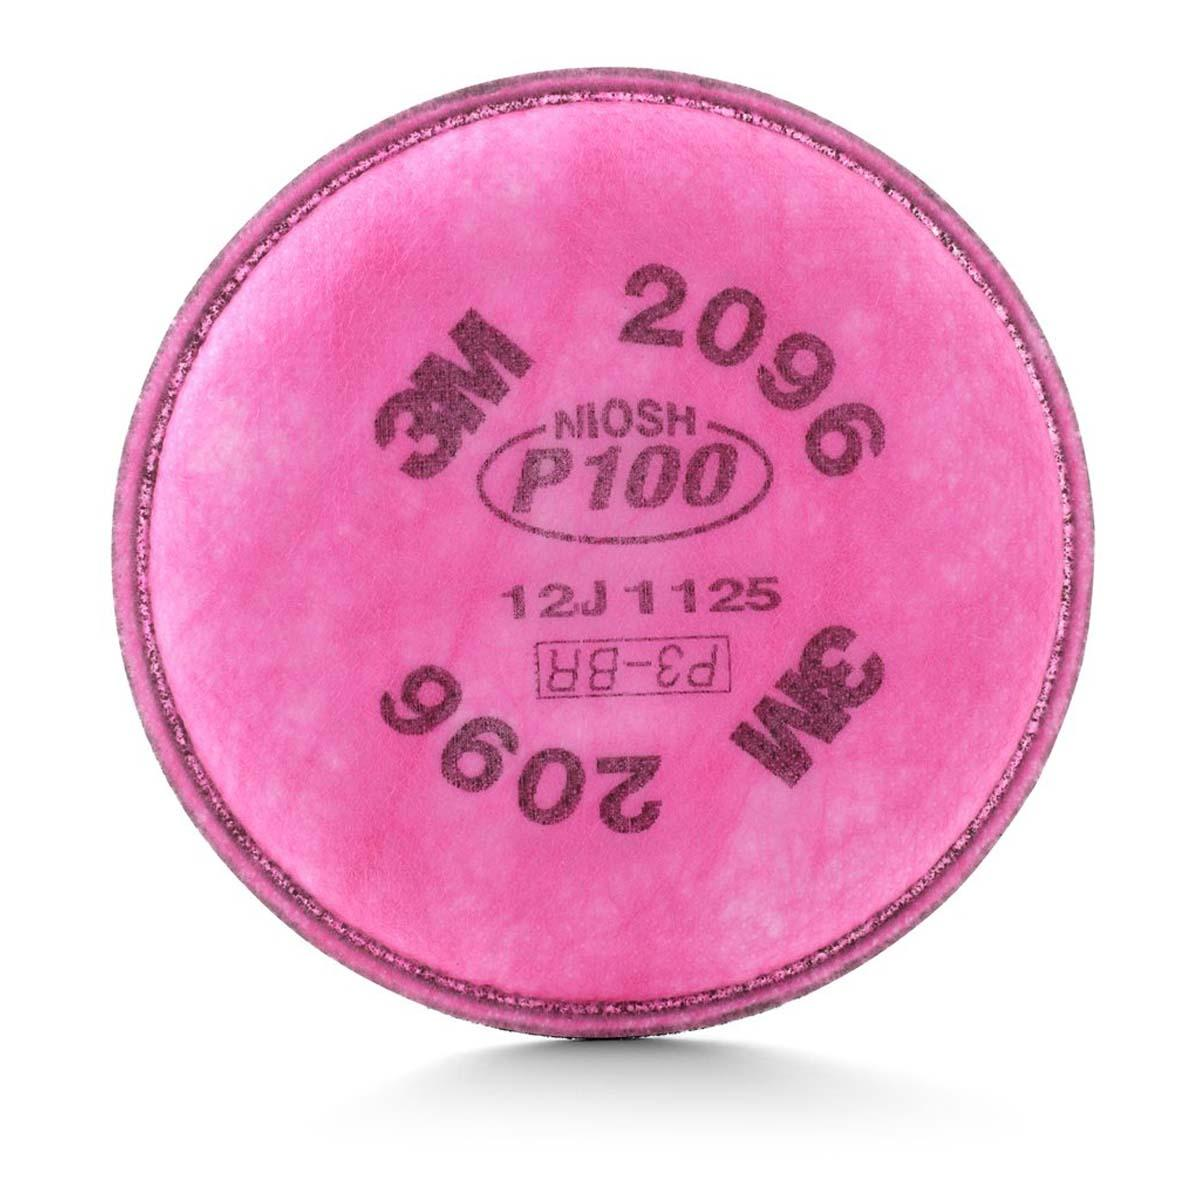 "3Mâ""¢ Particulate Filter 2096, P100, with Nuisance Level Acid Gas Relief"